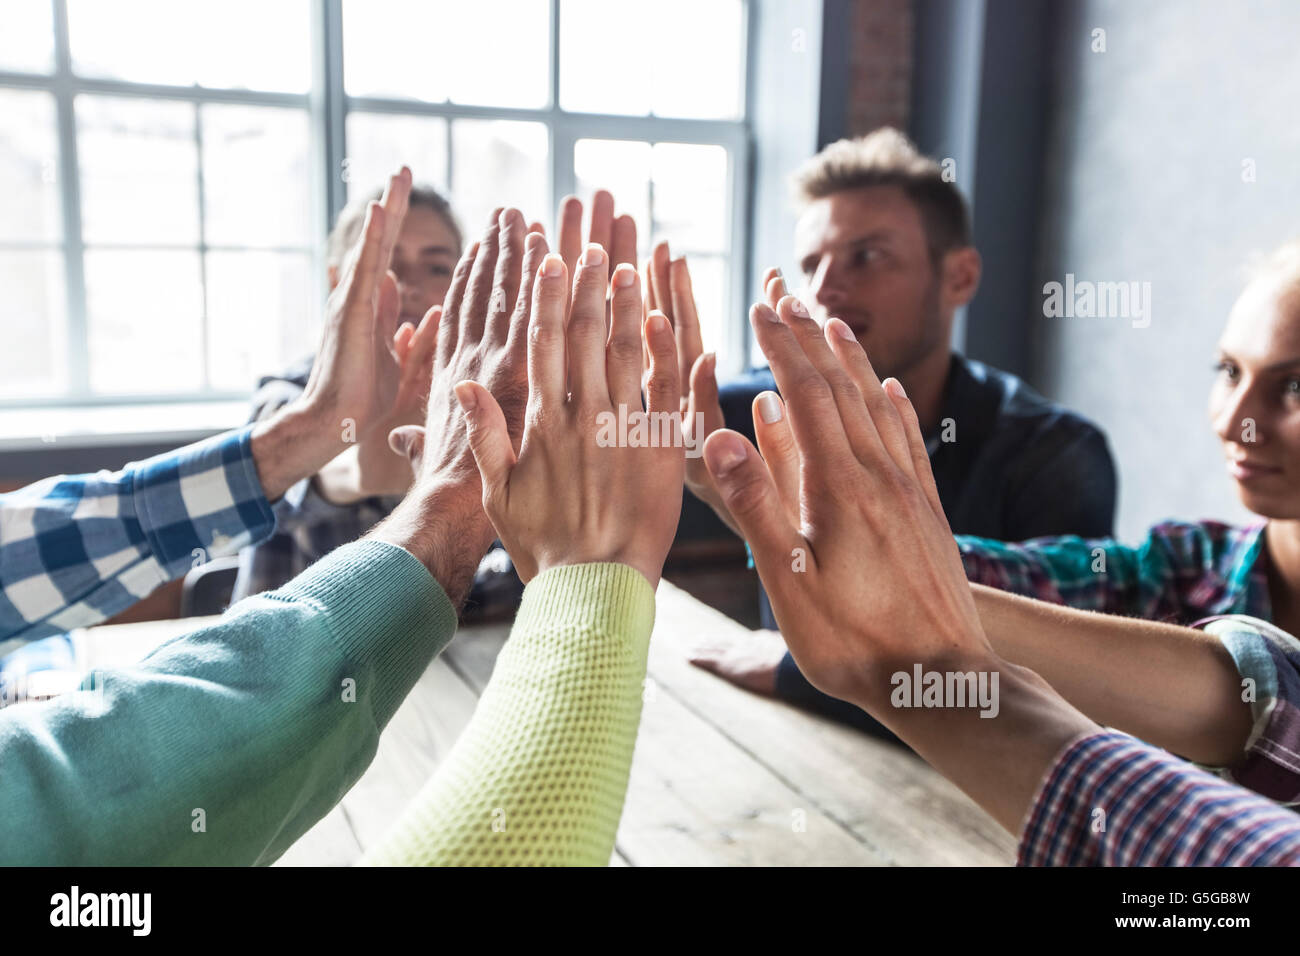 Modern business meeting concept, people on casual clothes sitting around wooden table and give high five - Stock Image